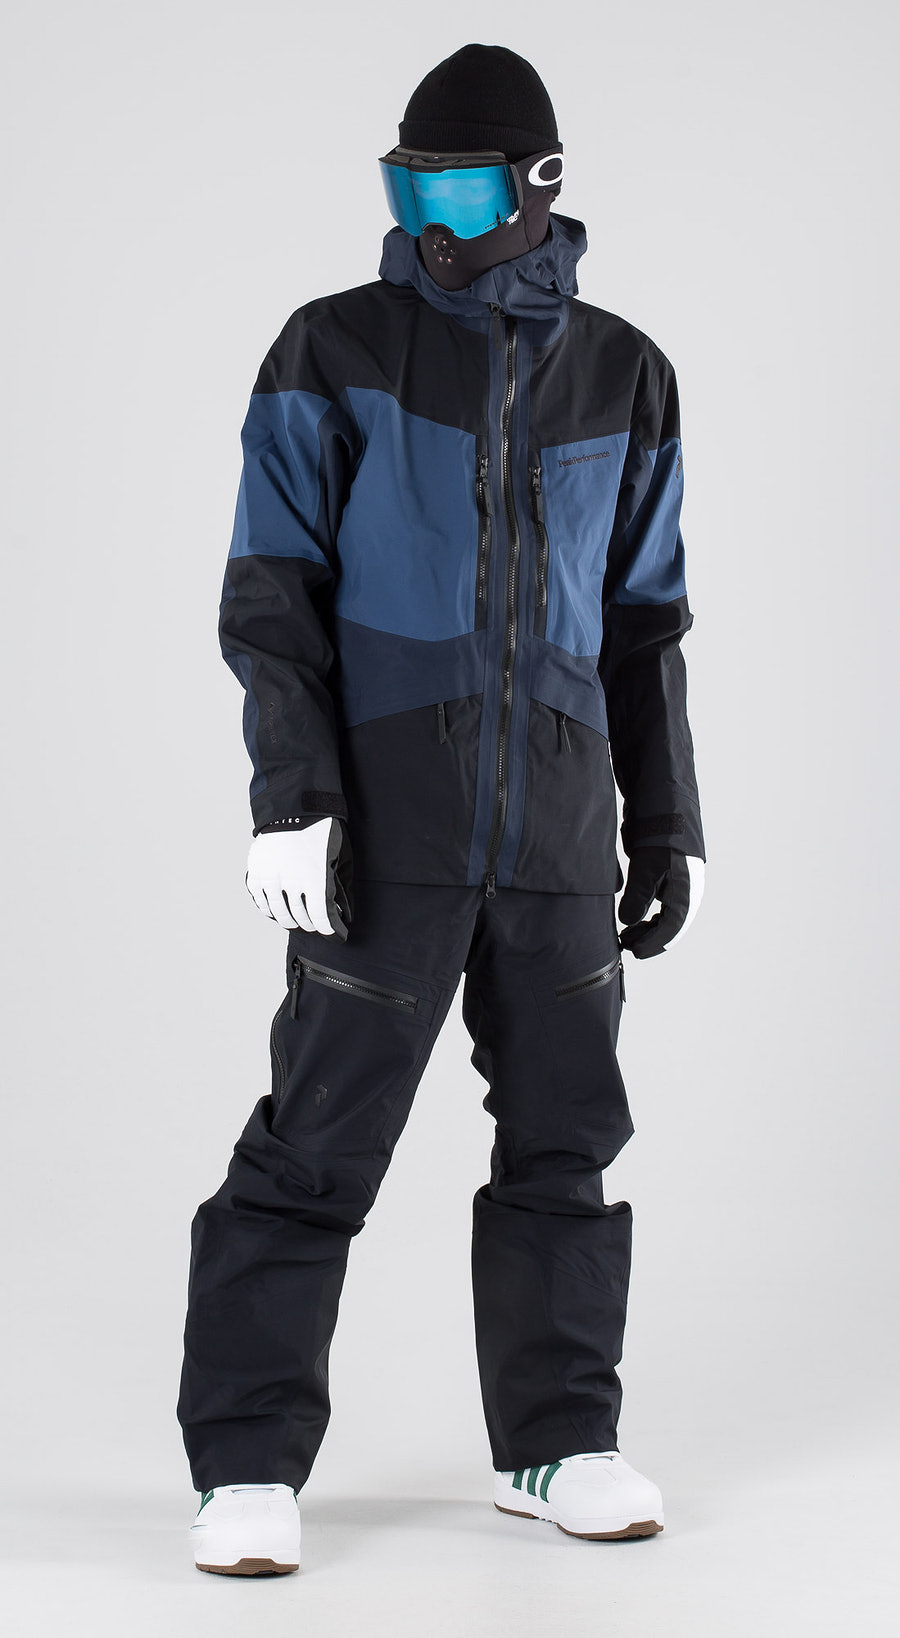 Peak Performance Gravity Decent Blue Snowboardkläder Multi